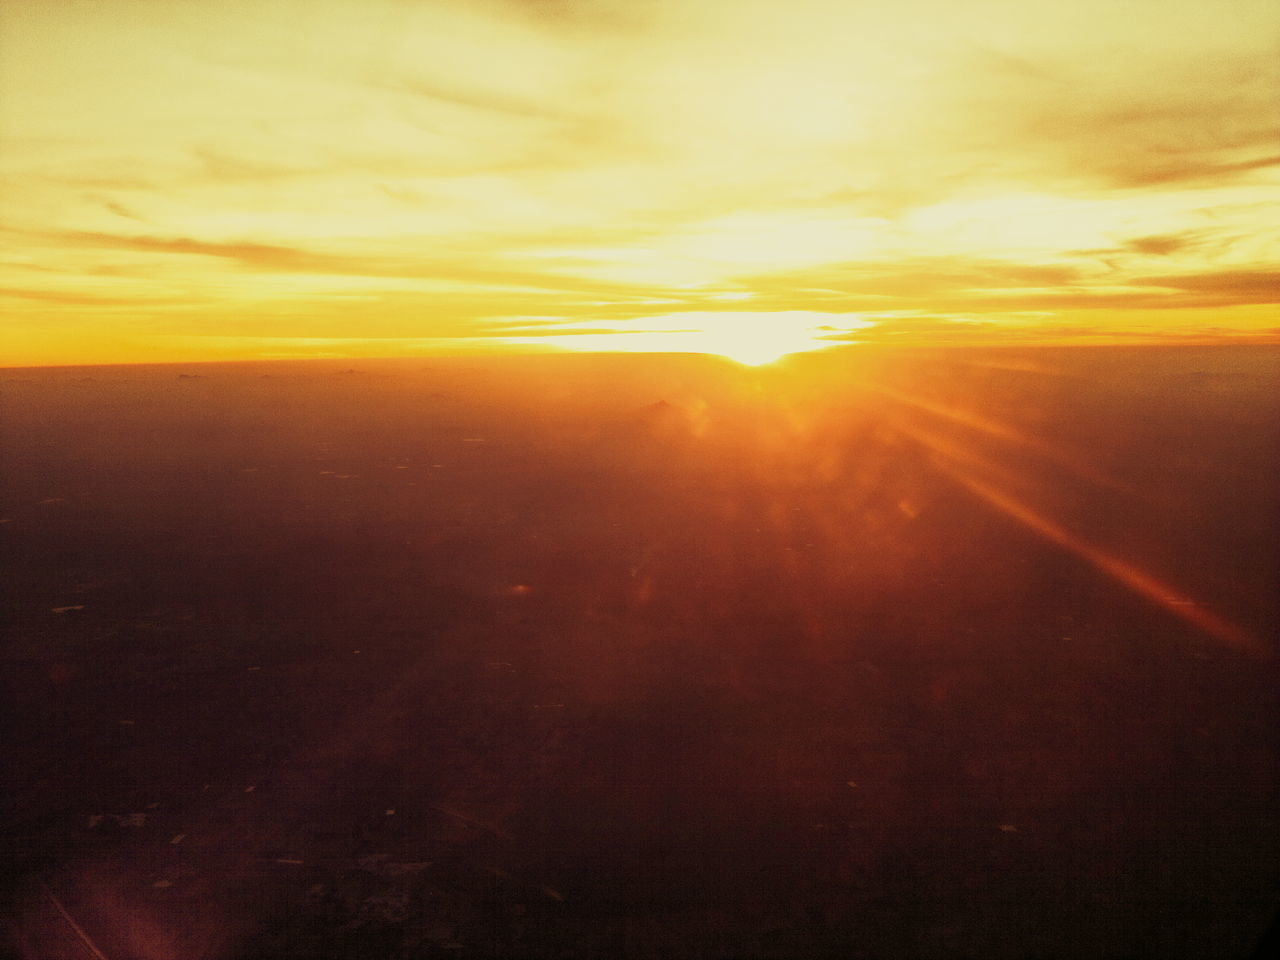 Beauty In Nature From An Airplane Window From My Point Of View From Where I Stand Nature No People Outdoors Scenics Sky Sunrise Sunset Tranquility